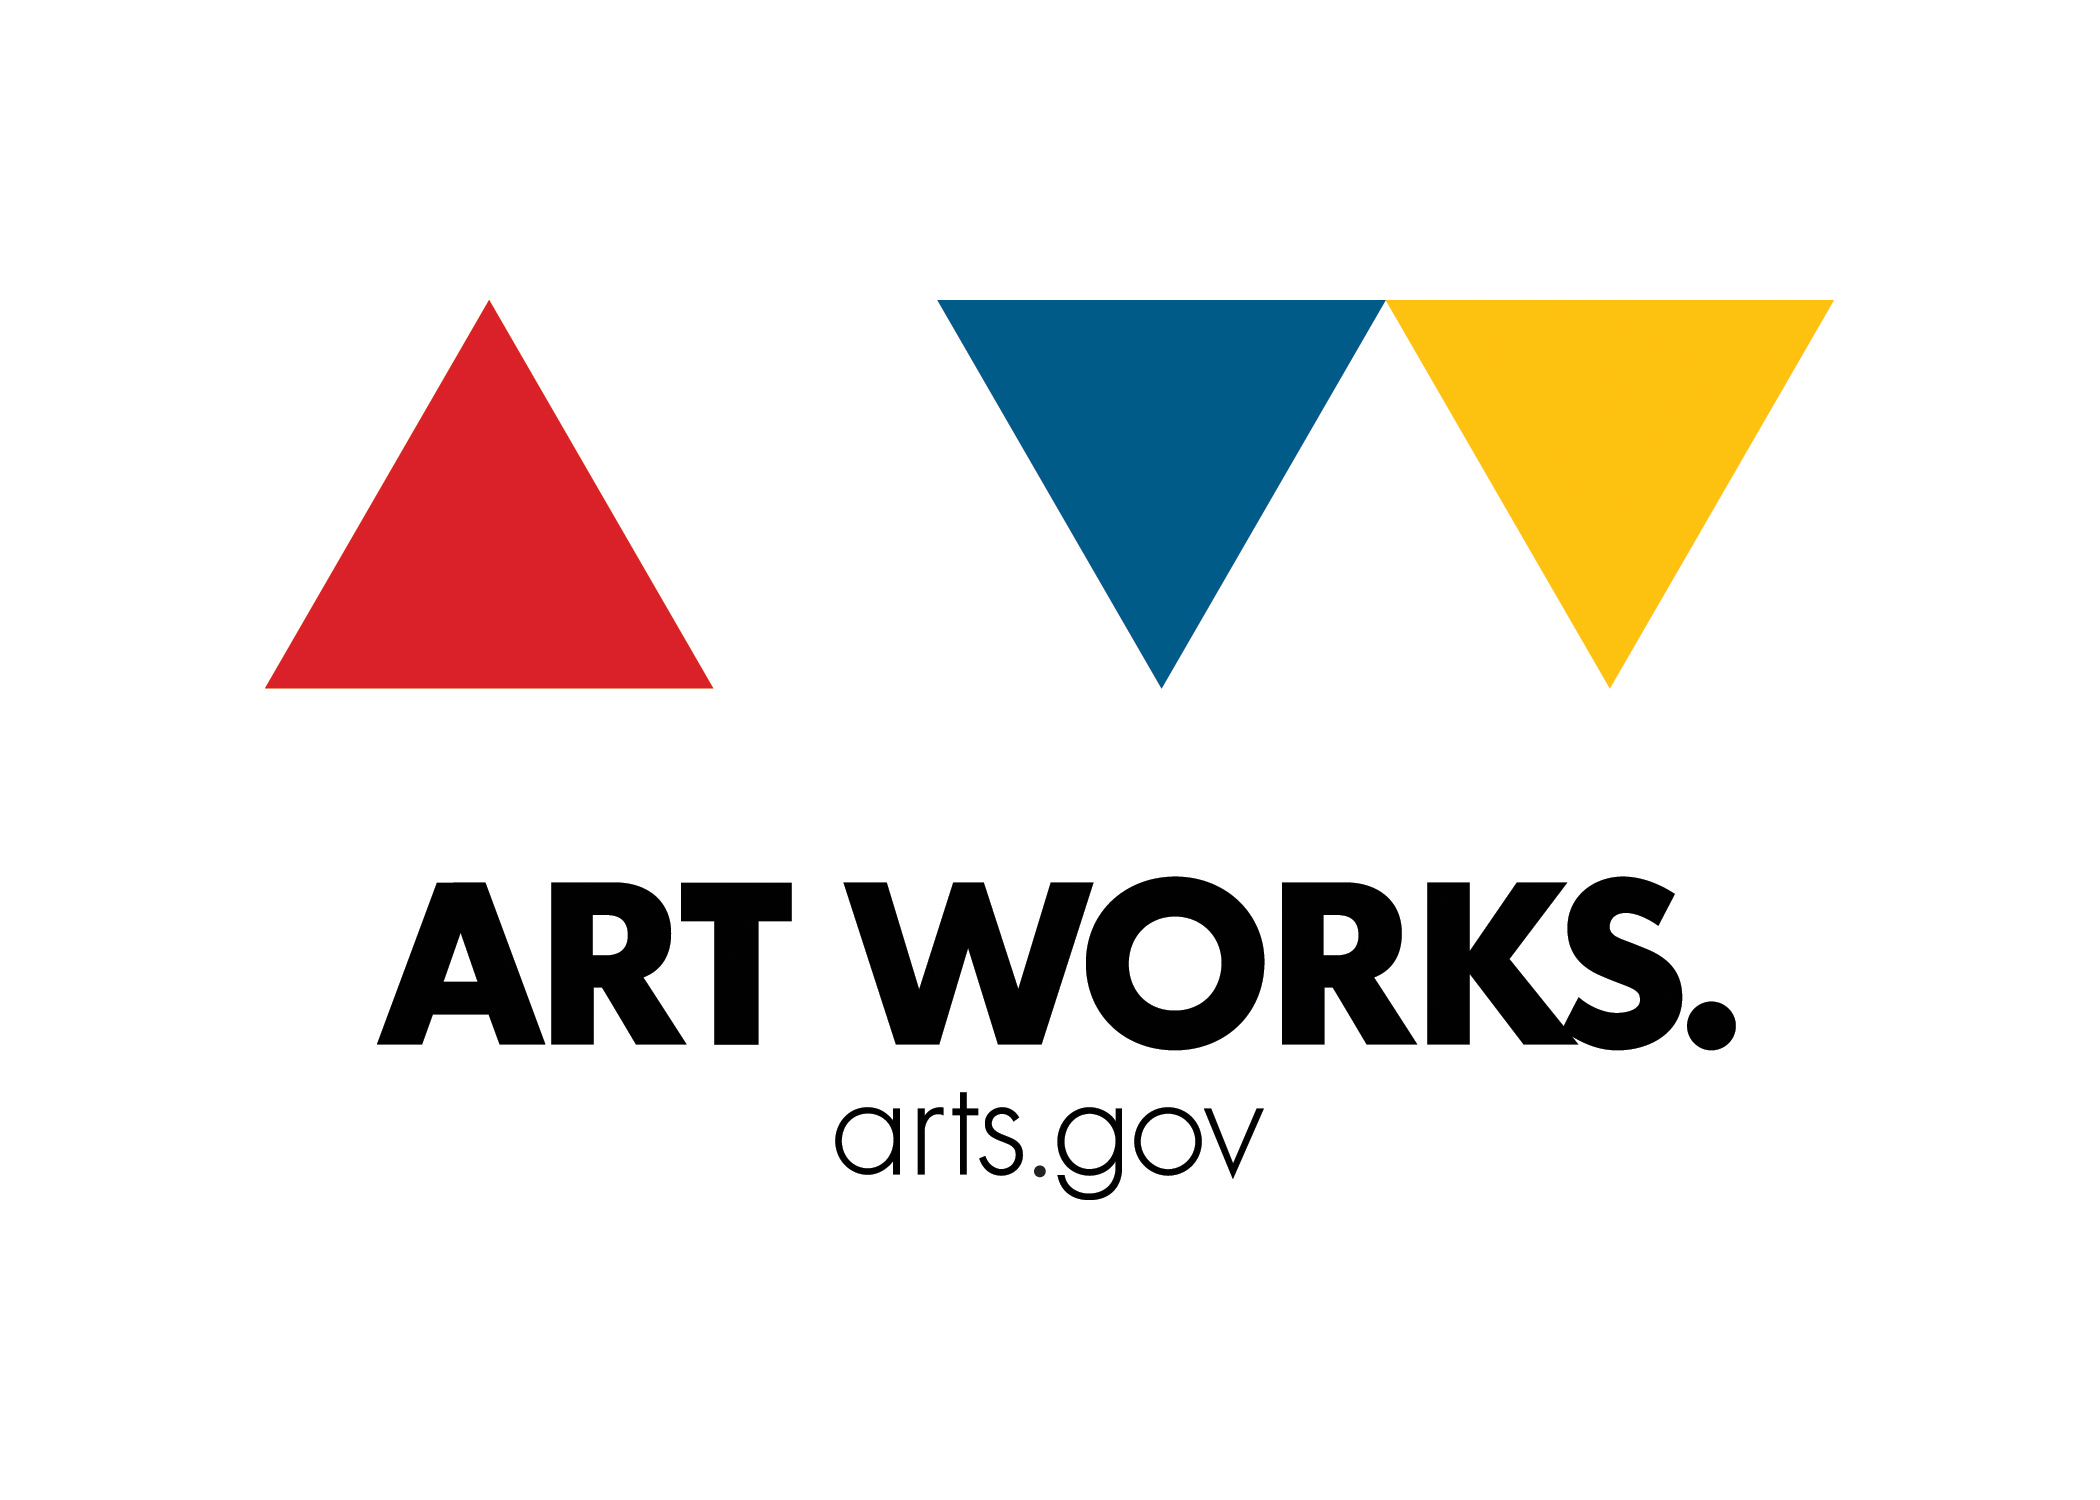 National Endowment for the Arts - Wikipedia, the free encyclopedia